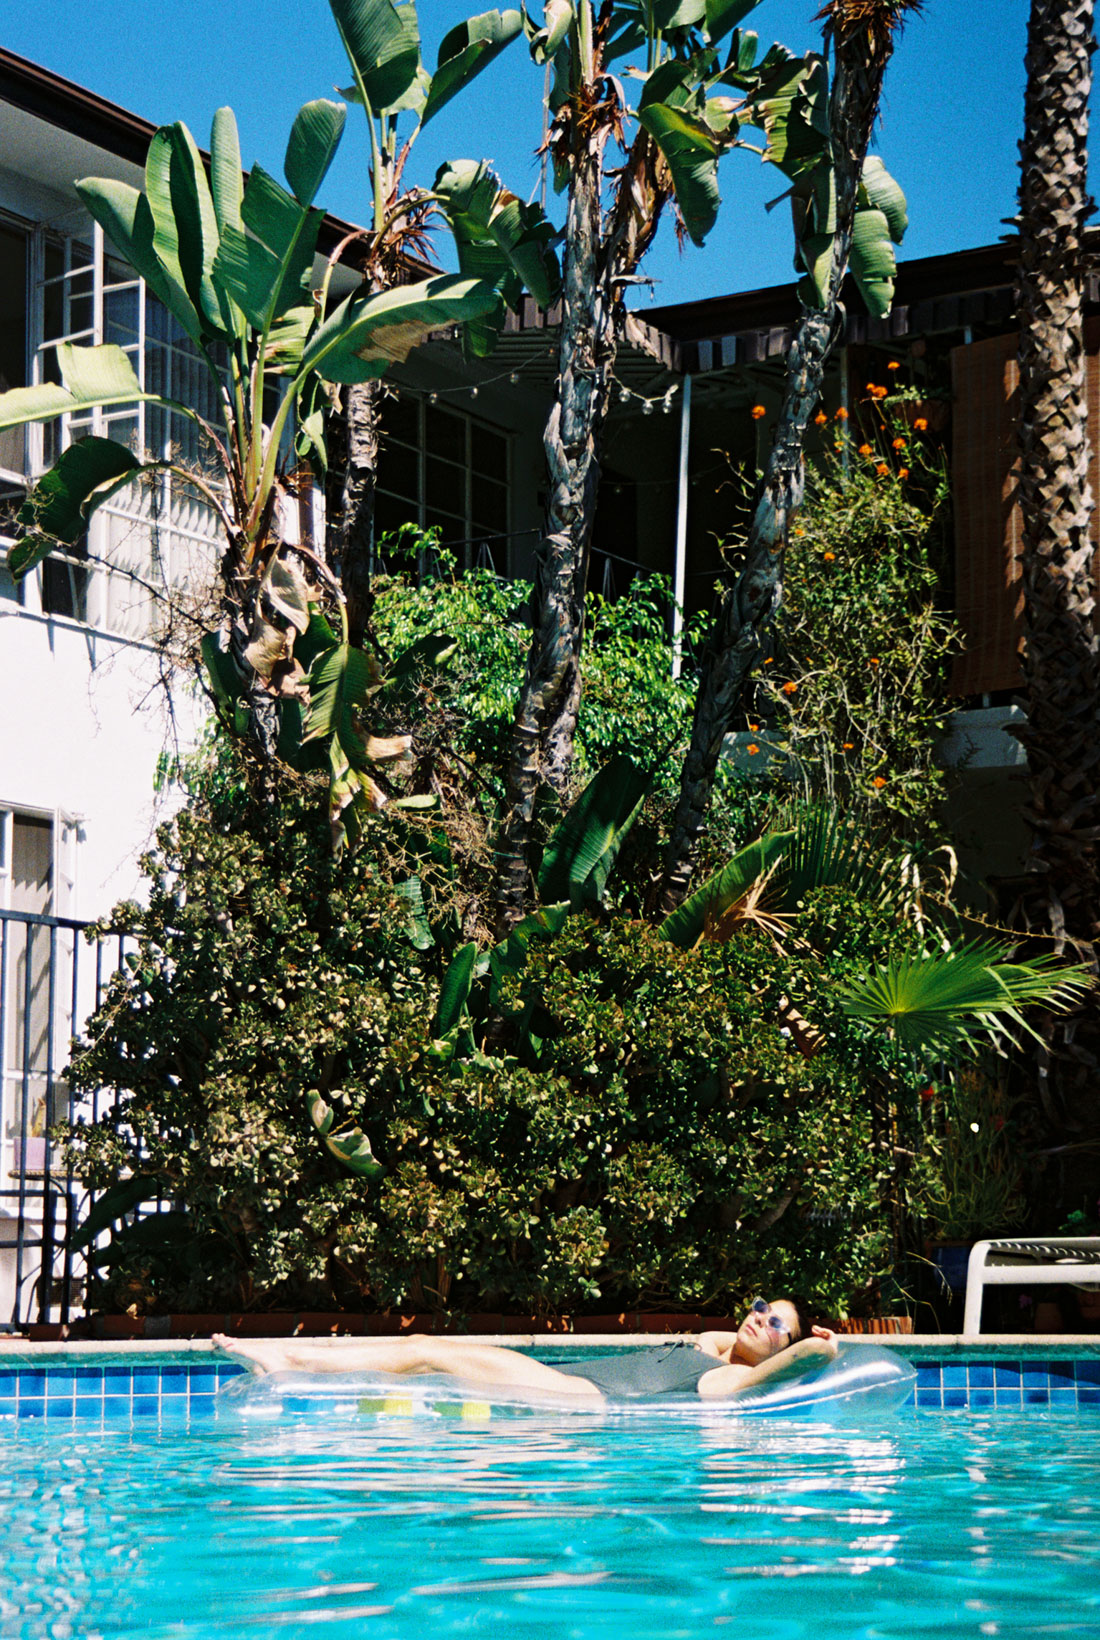 Cara swimming in West Hollywood